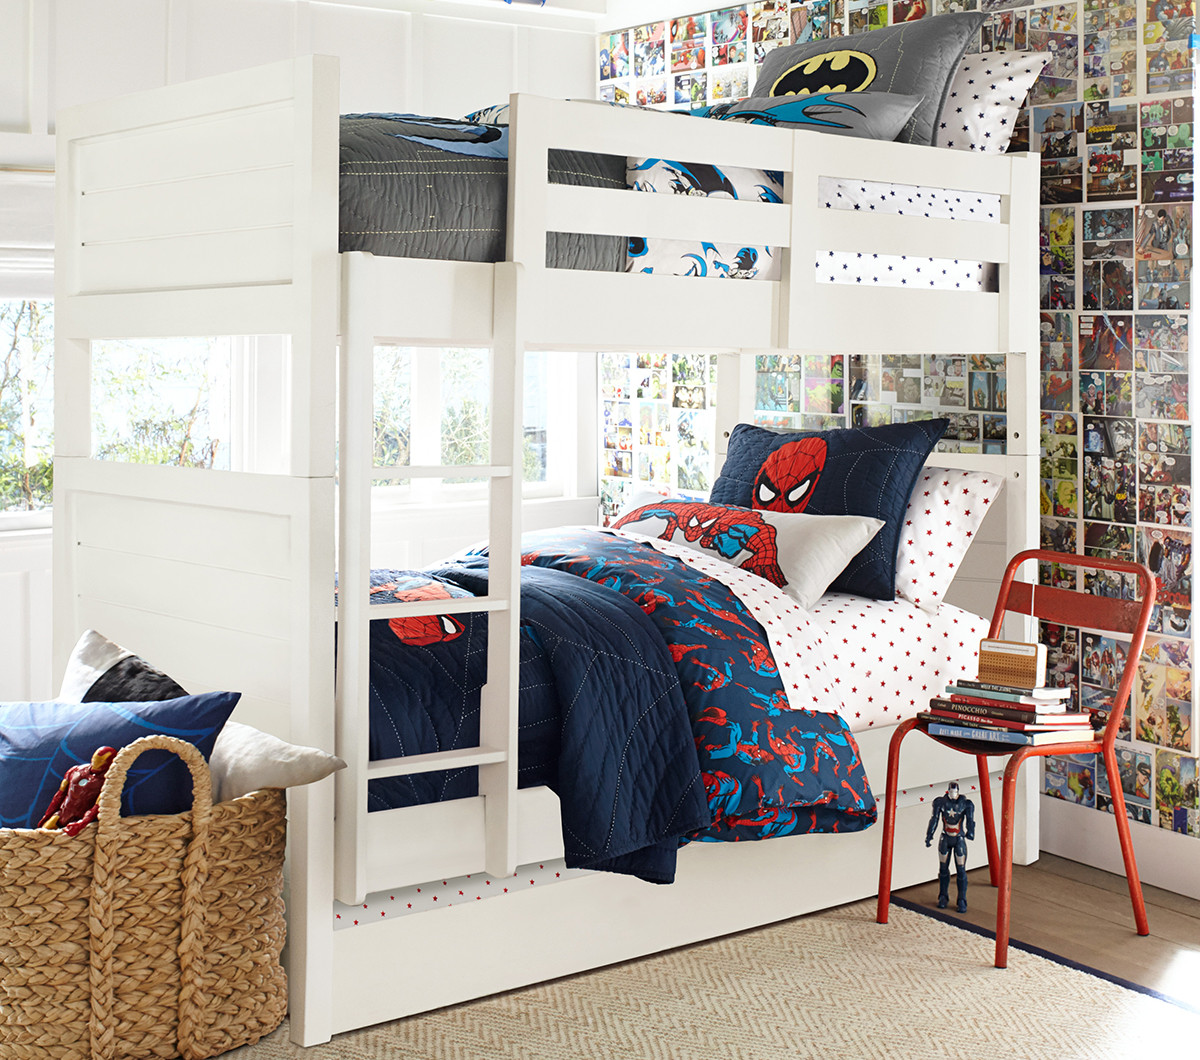 Complete Boy Kid Bedroom With White Boys Bunk Beds And Superheroes Themed  Bedding Beside Comic Decal